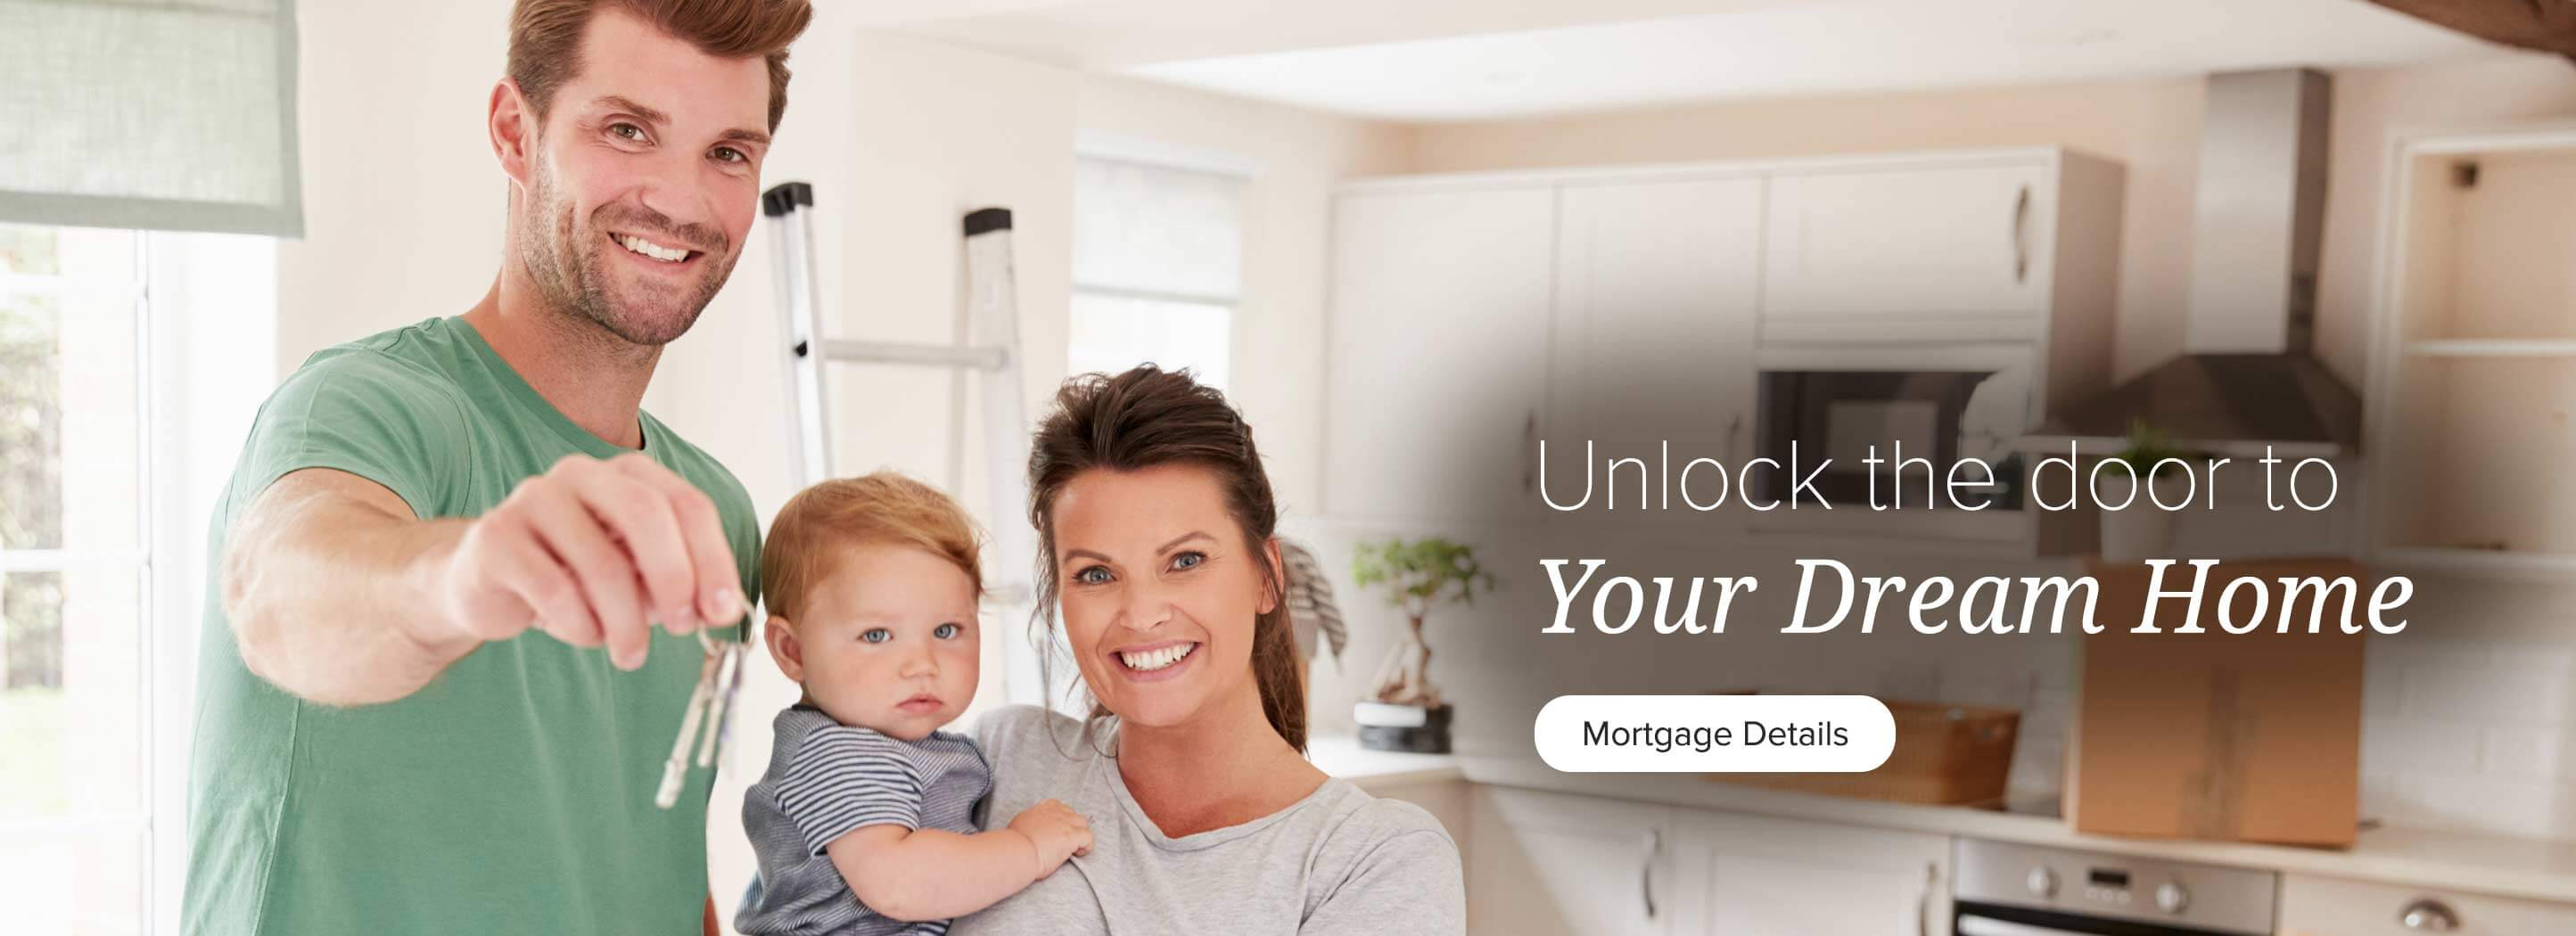 Unlock the door to your dream home Mortgage Details